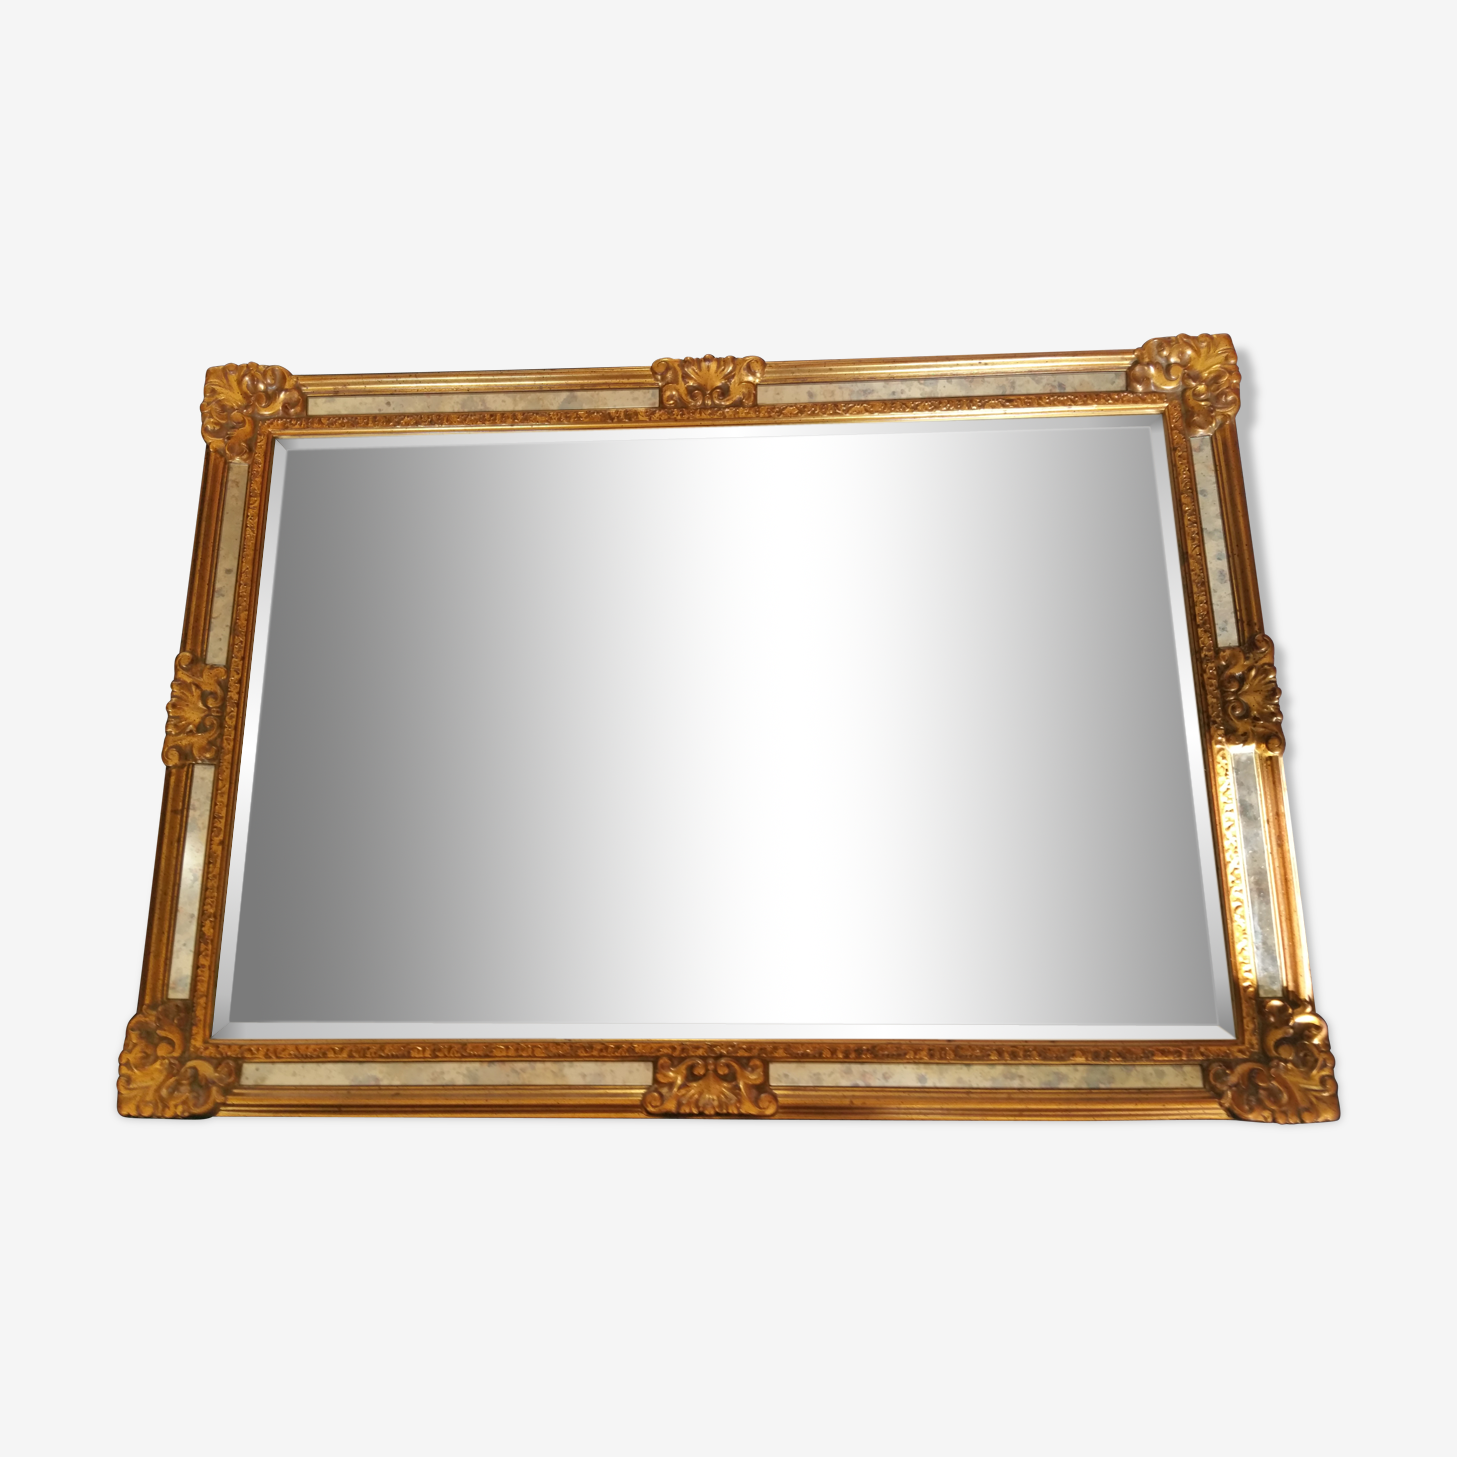 Golden wood and mirror beveled mirror 67x95cm